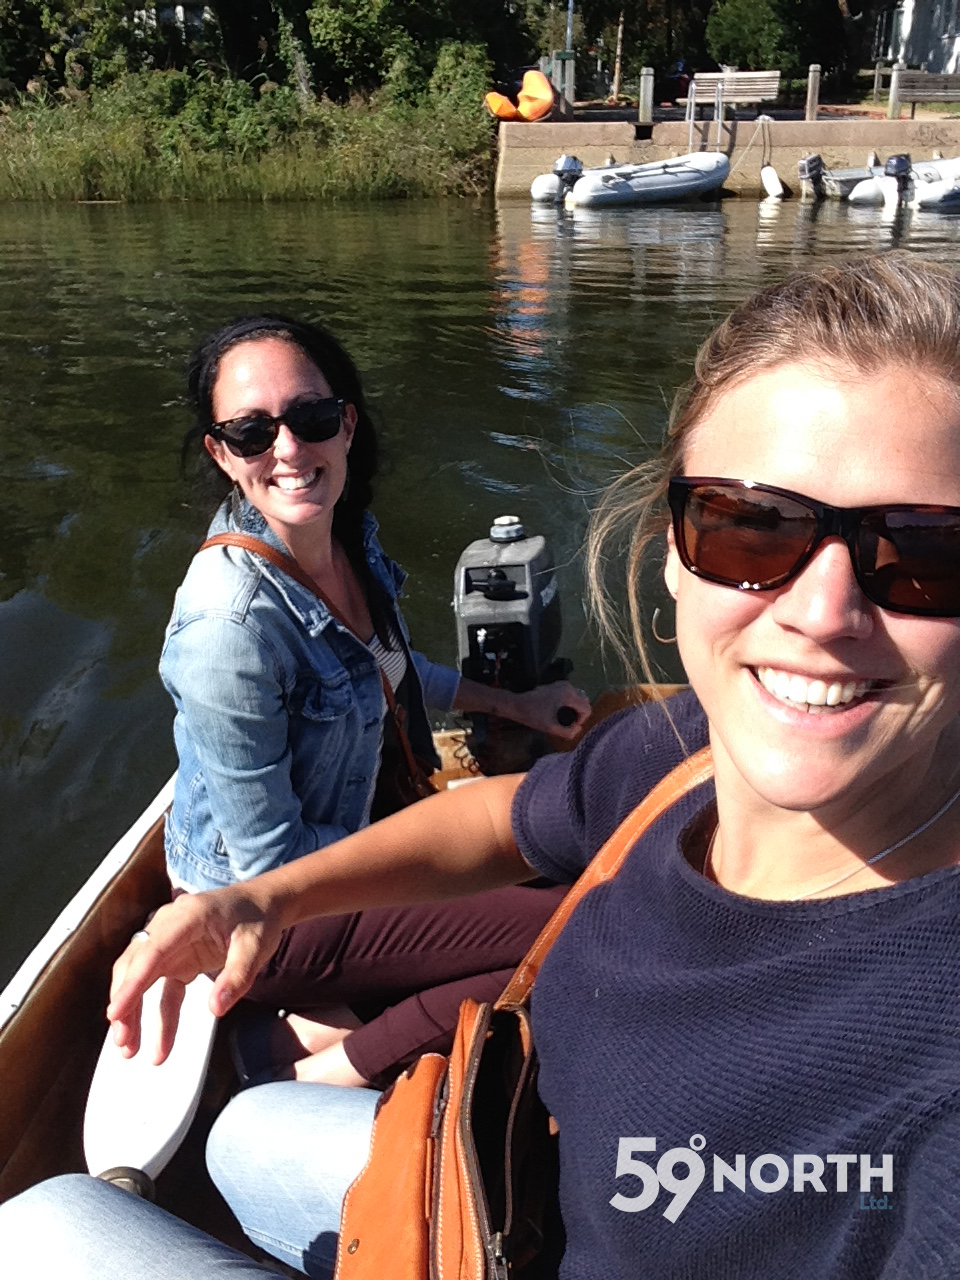 BC gang heading back to our boats on anchor, Mia and Rachel in Satori's dinghy. October 2016